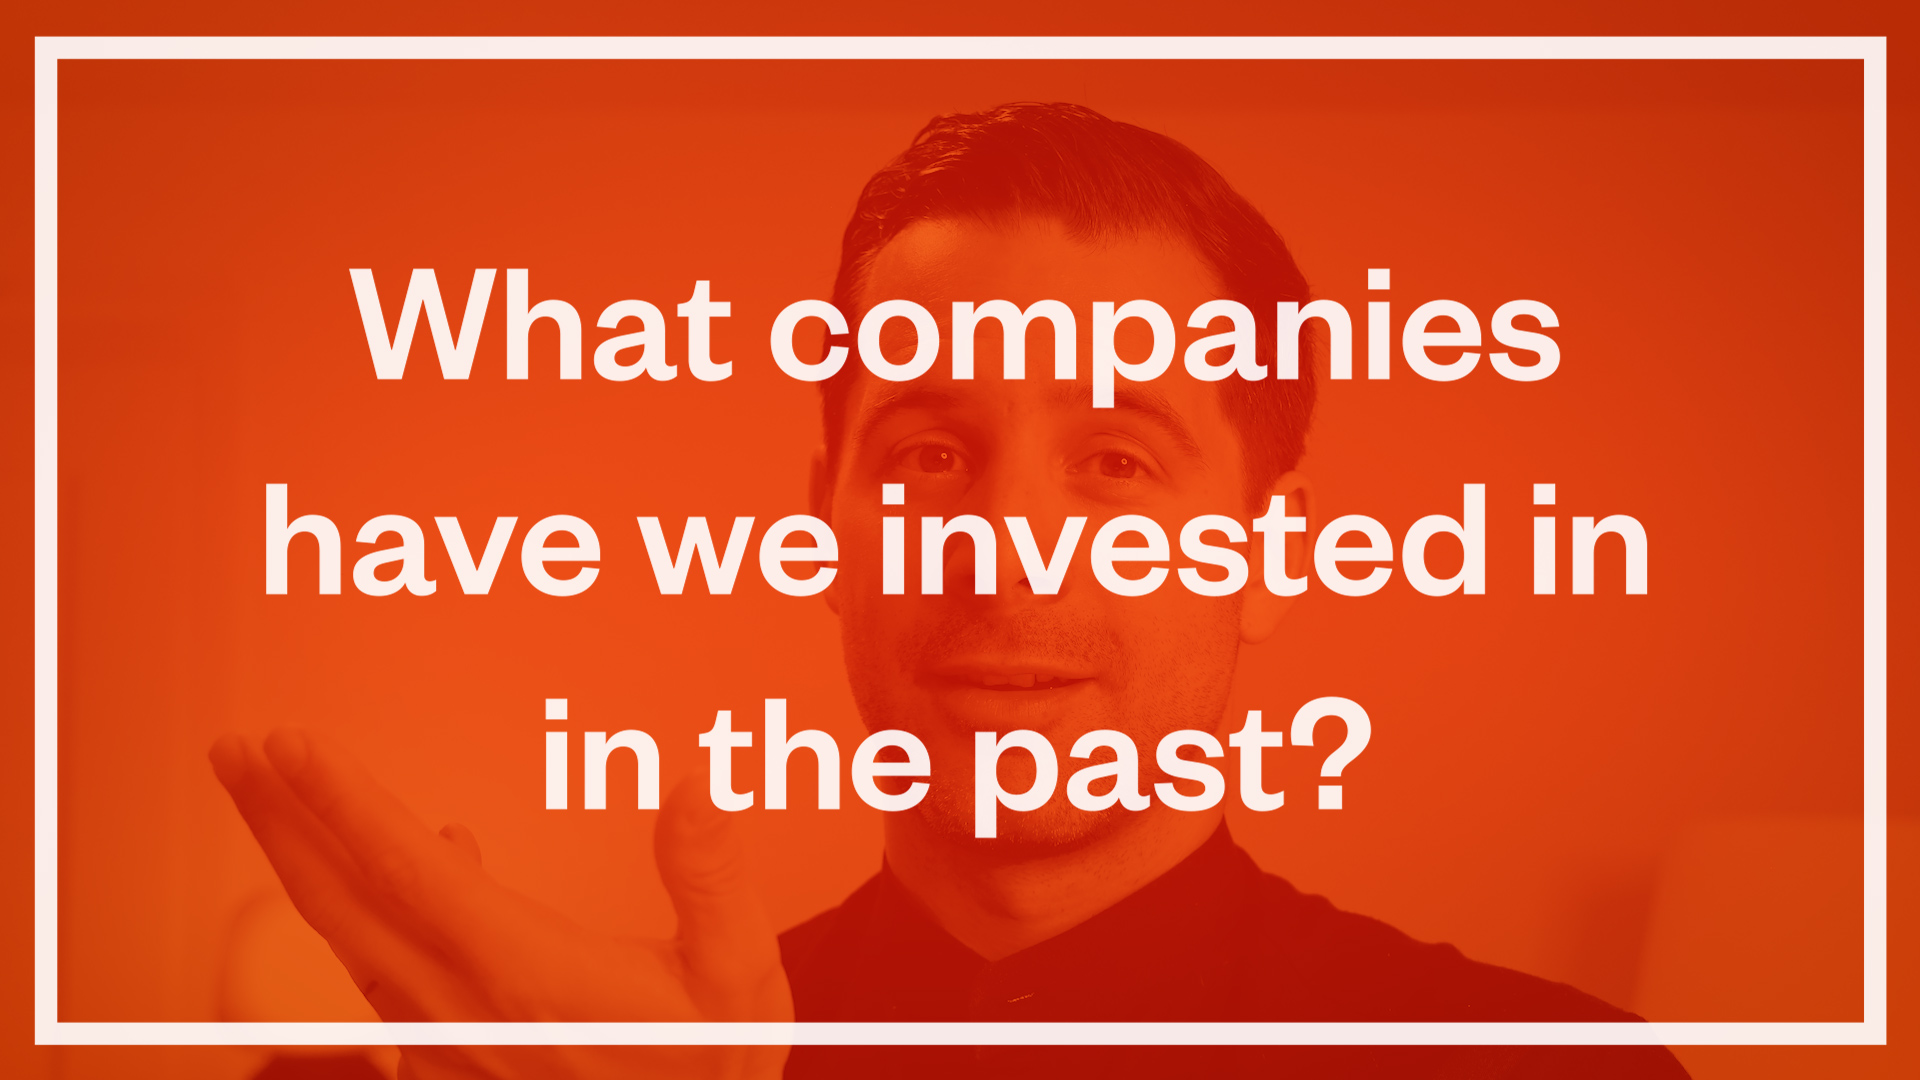 What are some companies we have invested in in the past?